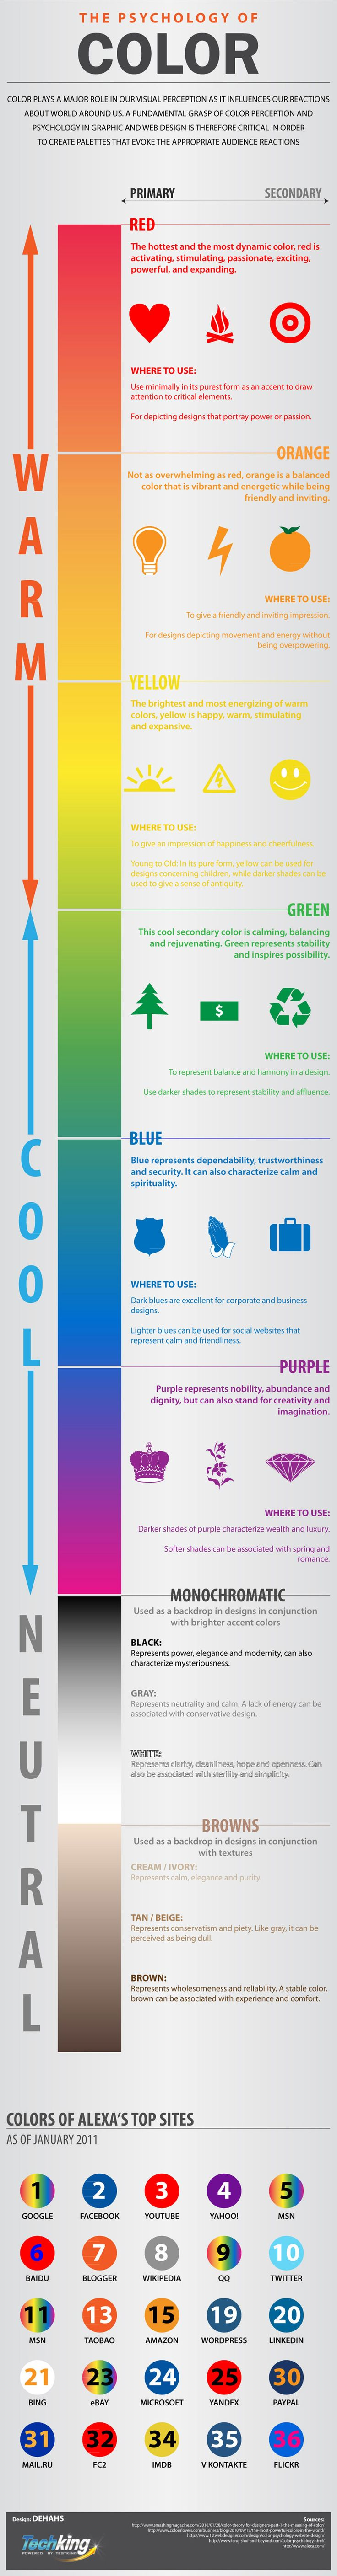 Say it with the right colour in your next Prezi. :) #Prezi #Design #Colours